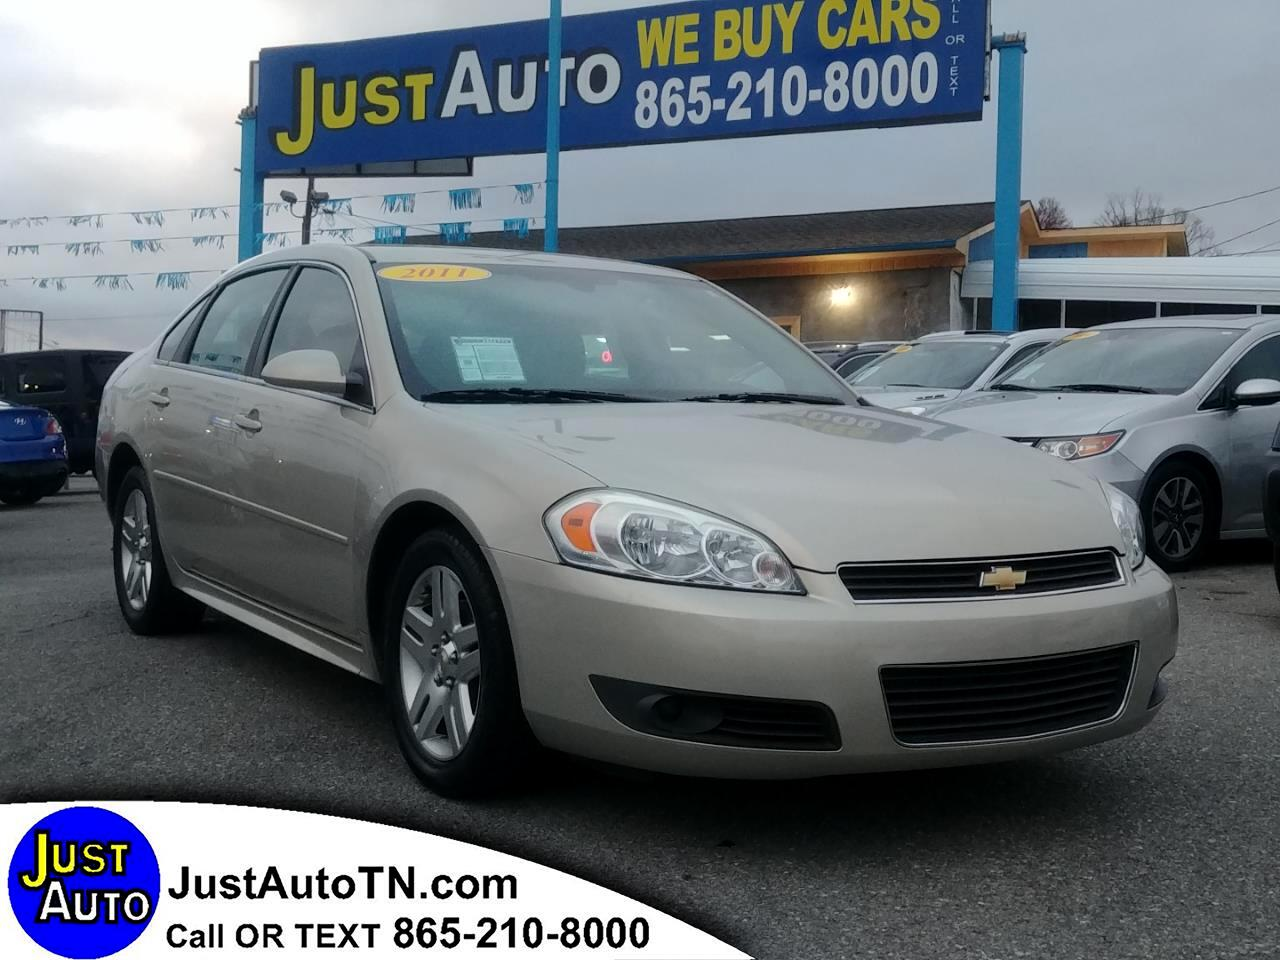 Chevrolet IMPALA LT Base 2011